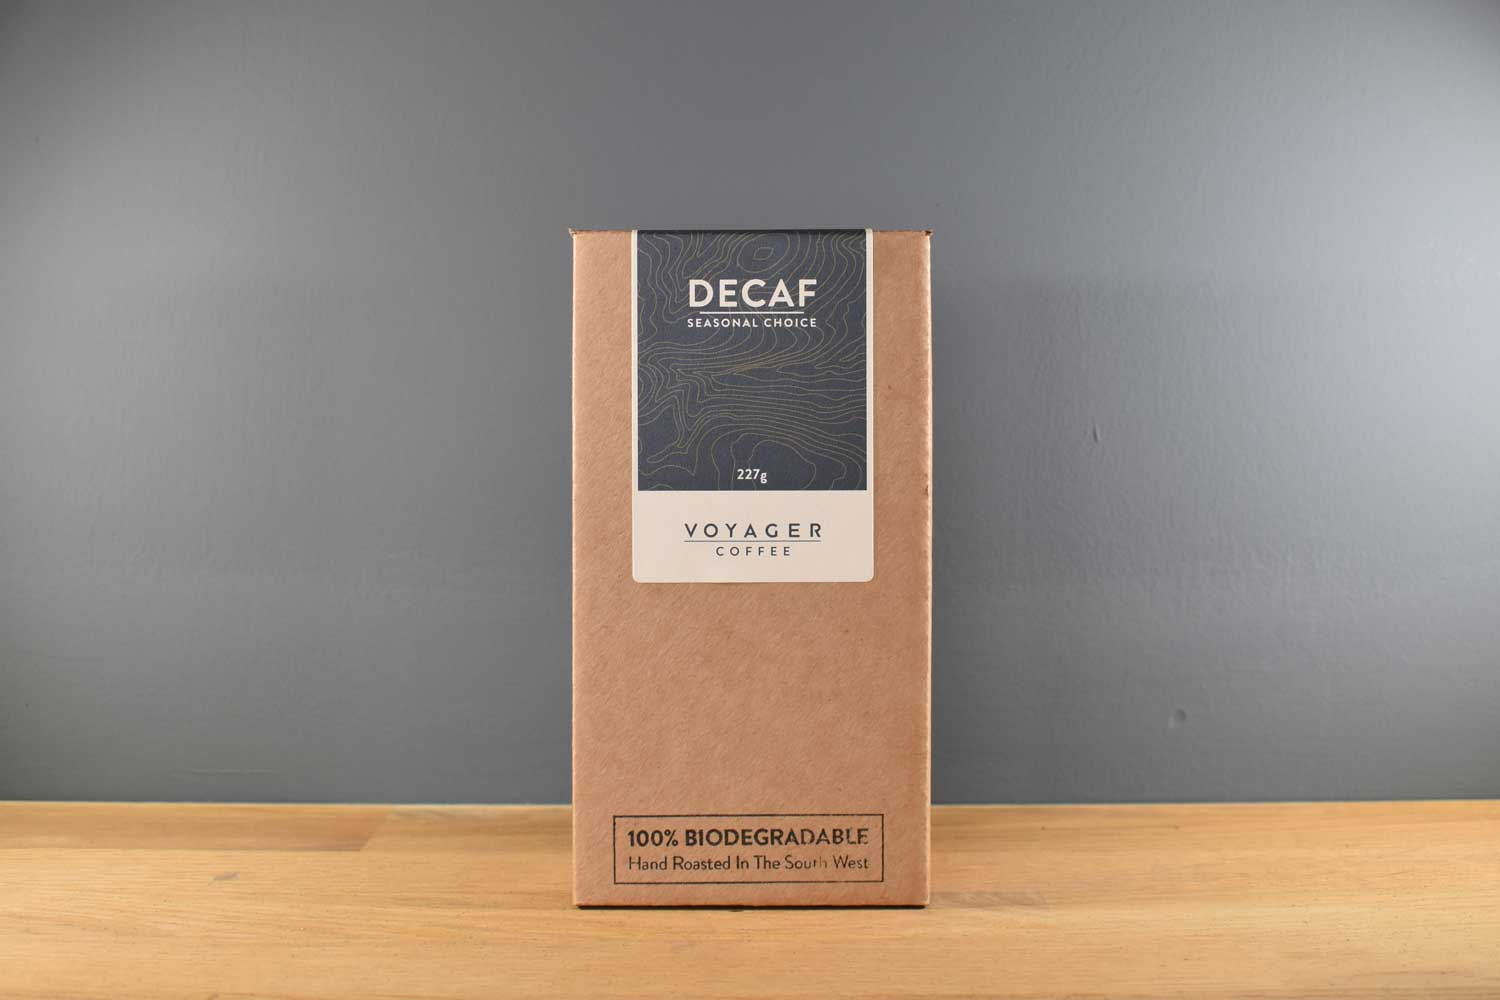 Voyager Coffee Decaf Retail